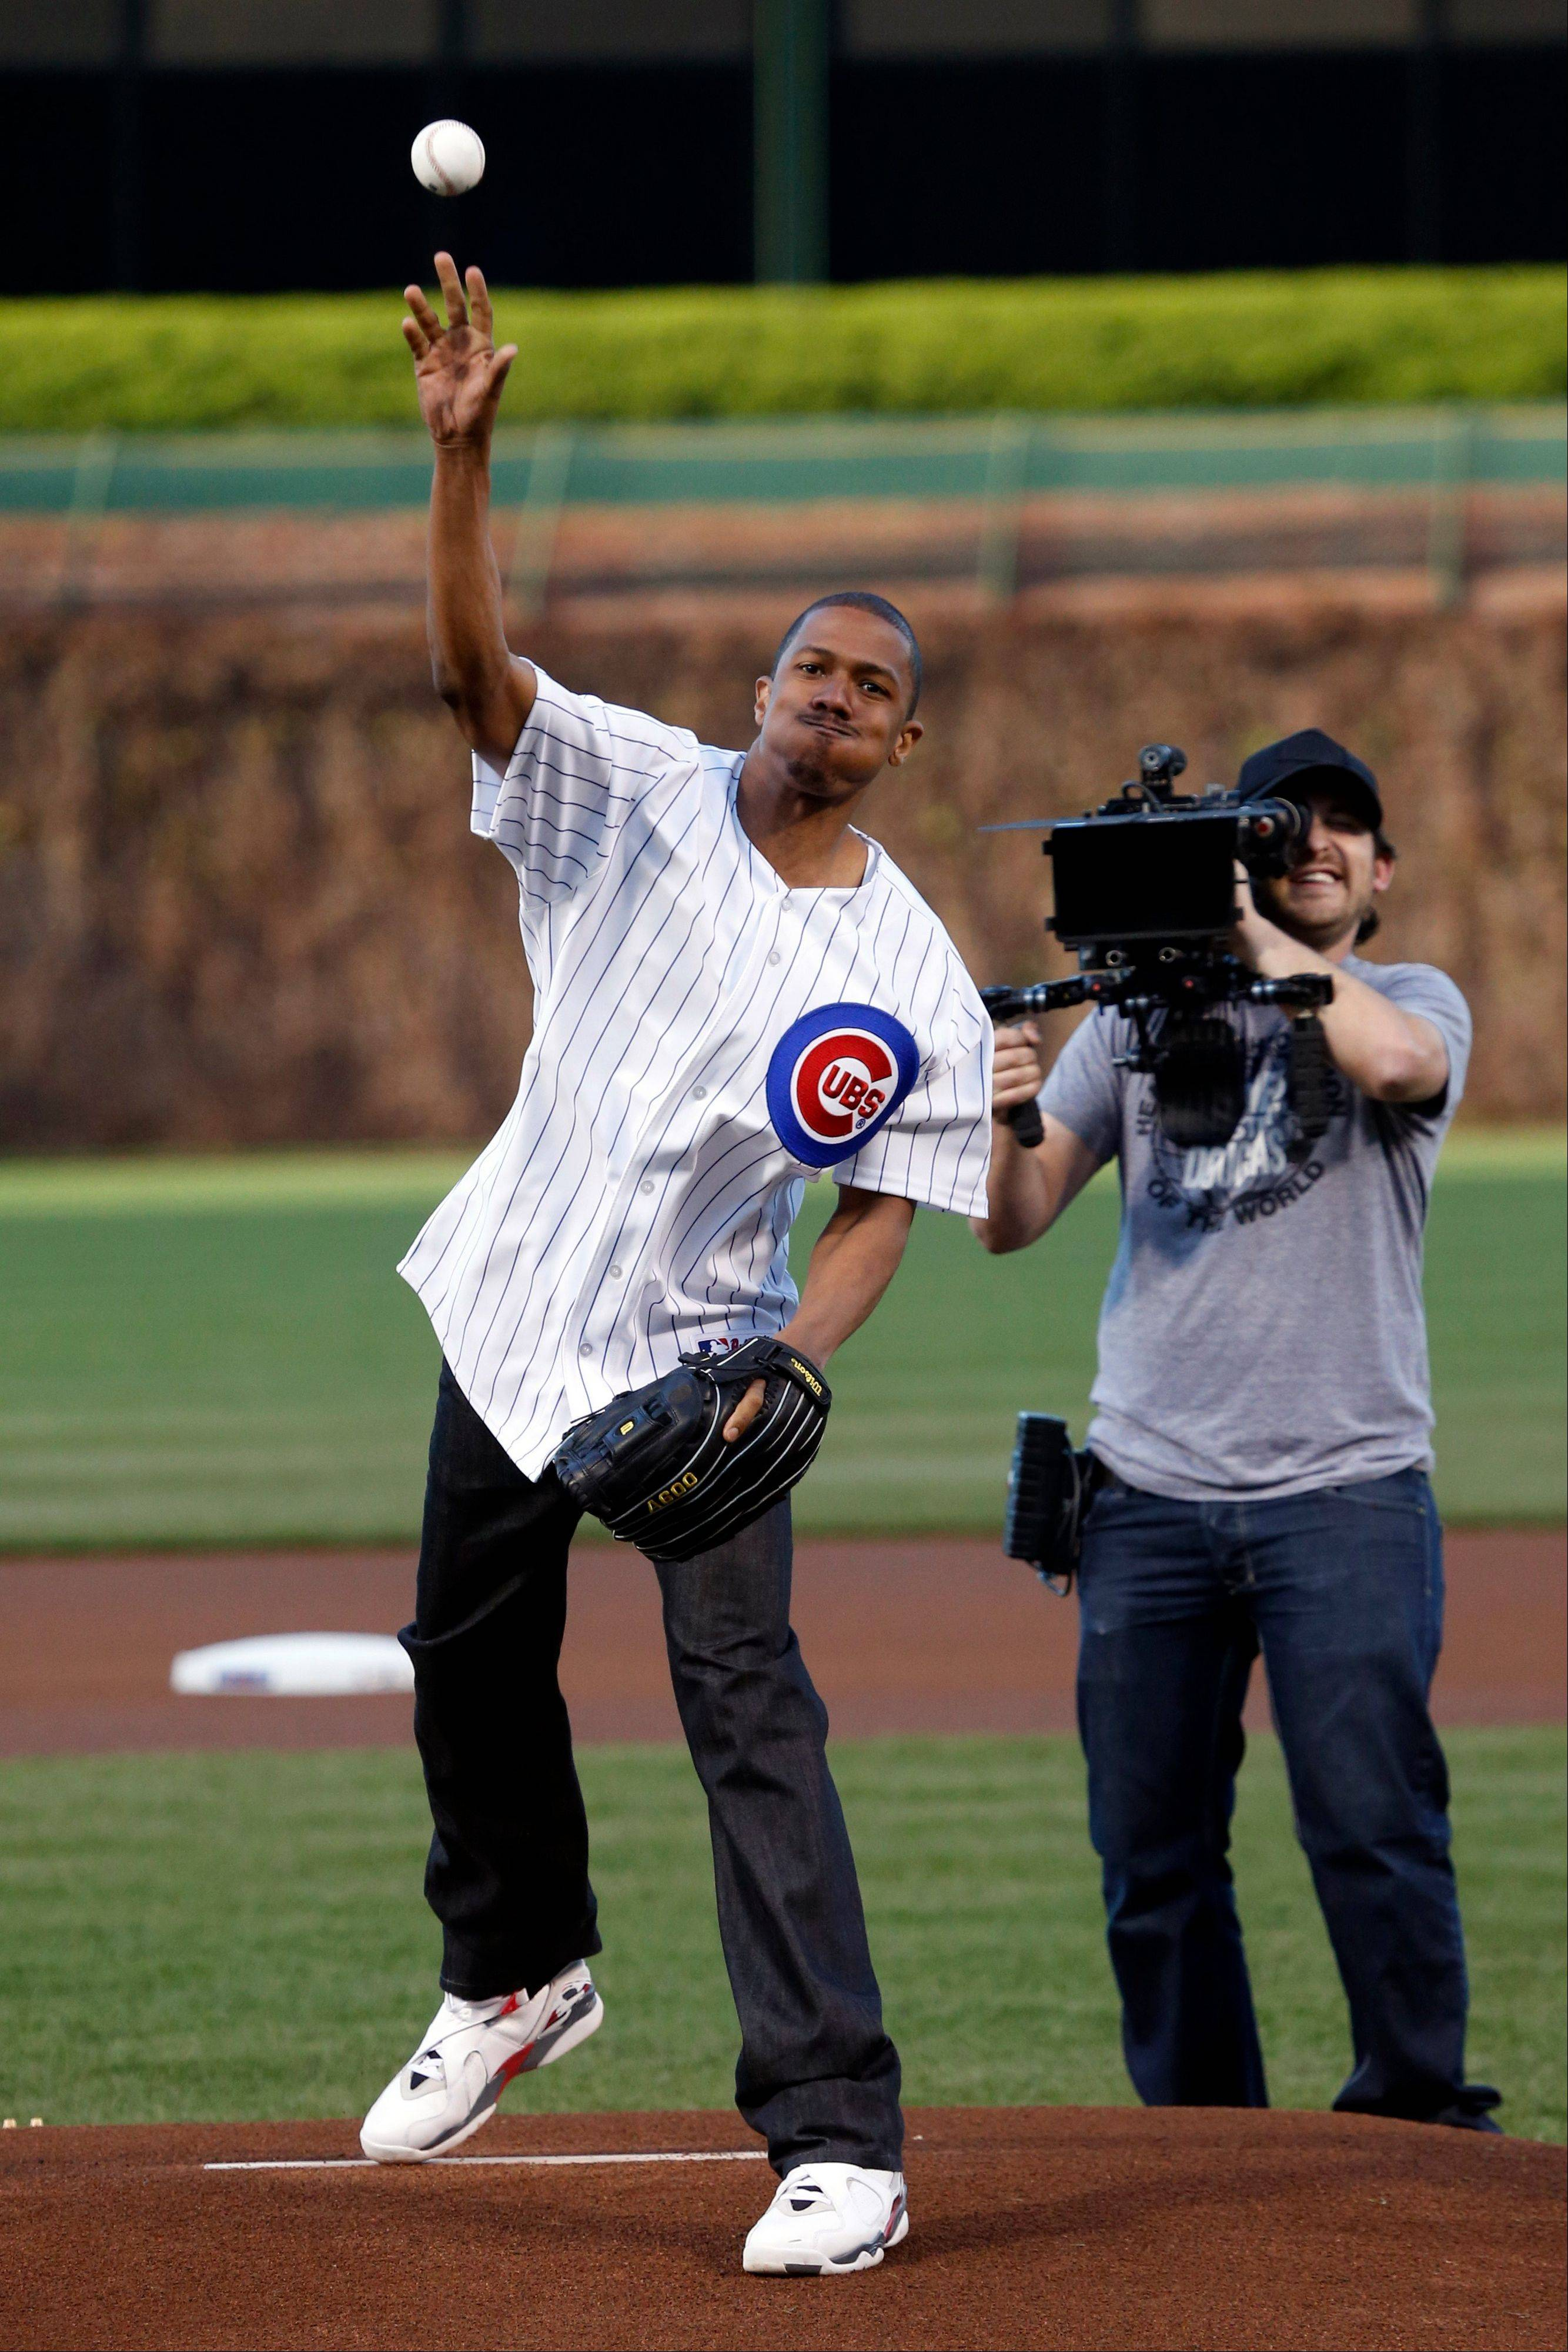 Performer and television personality Nick Cannon throws out a ceremonial first pitch before a baseball game between the Chicago Cubs and the St. Louis Cardinals, Tuesday, May 7, 2013, in Chicago.